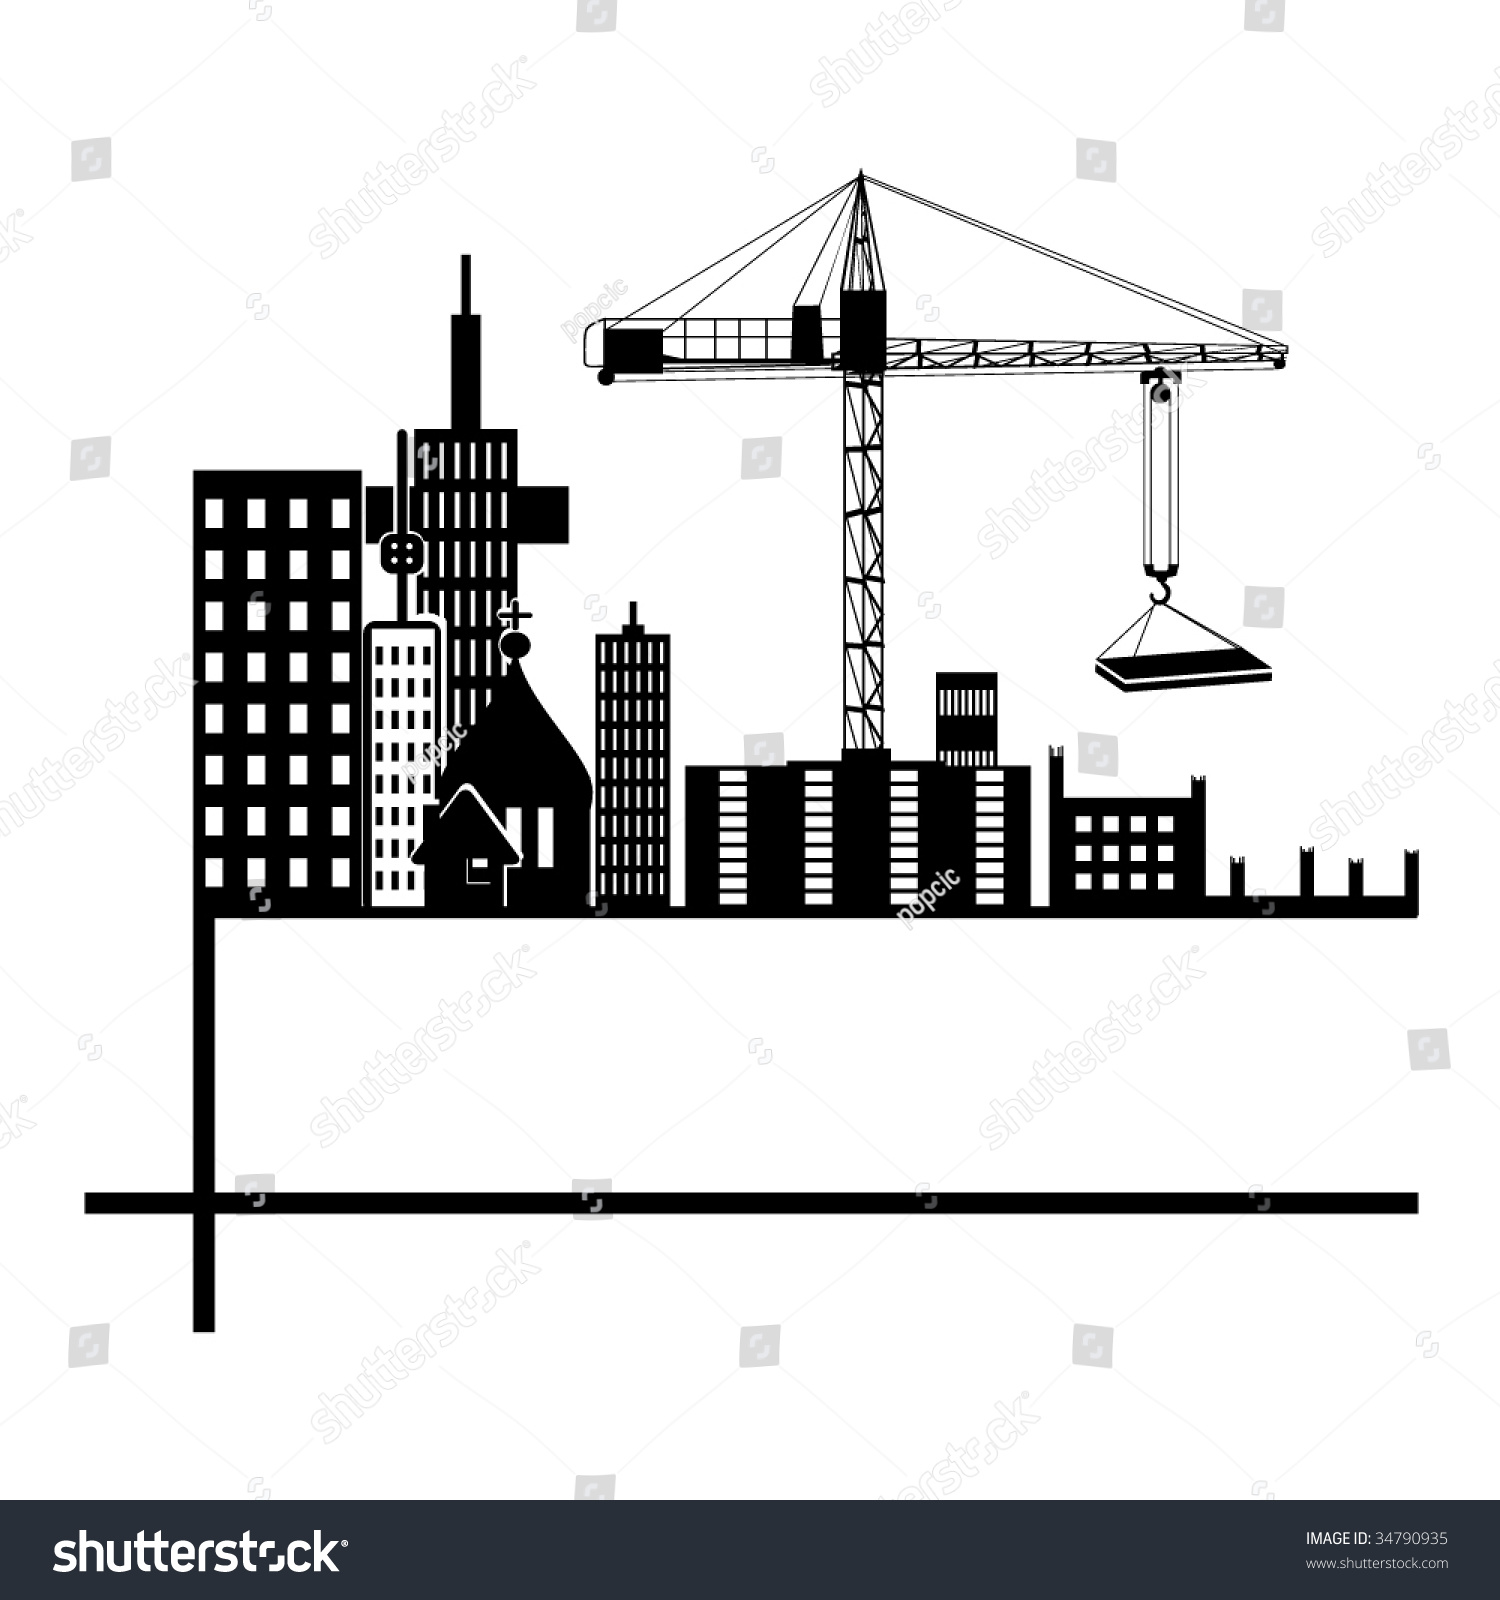 Construction silhouette photo